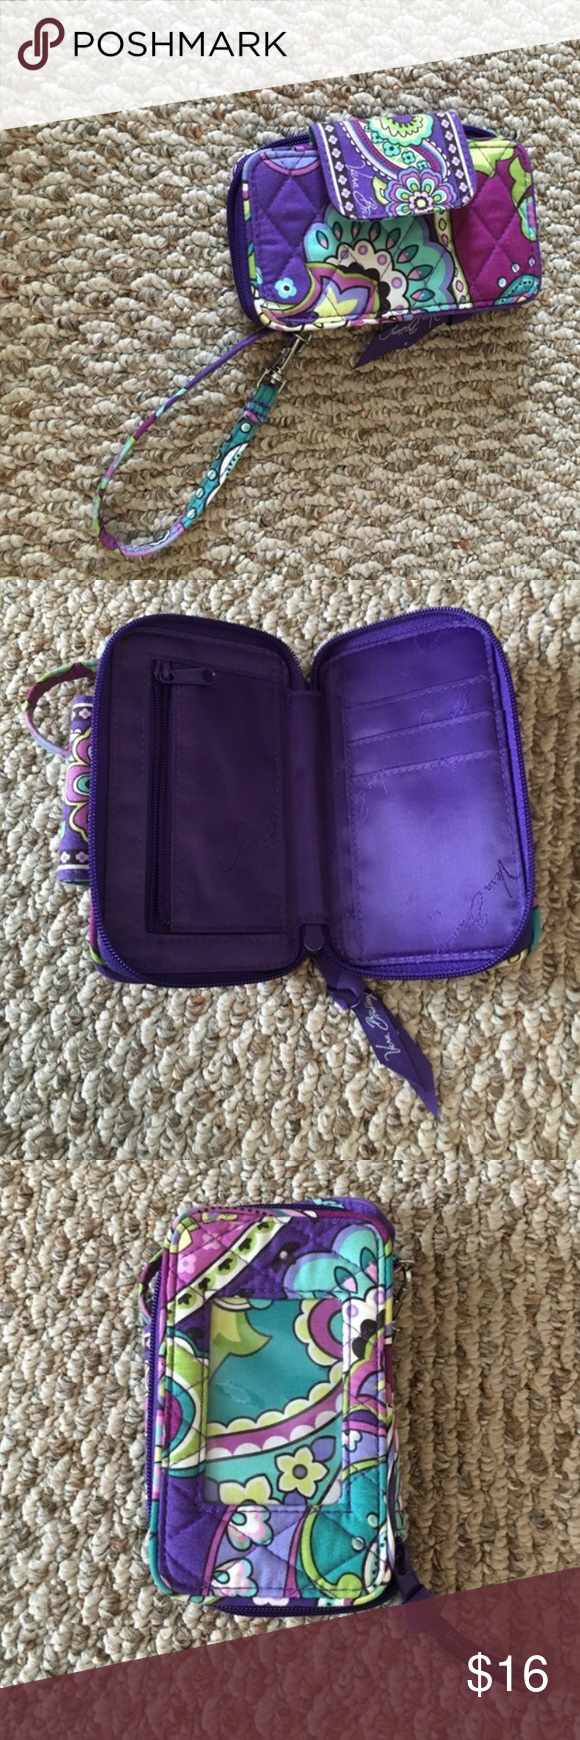 Vera Bradley Wristlet! Pet and smoke free home, only used a few times in good condition! Feel free to make an offer! (: Vera Bradley Bags Clutches & Wristlets